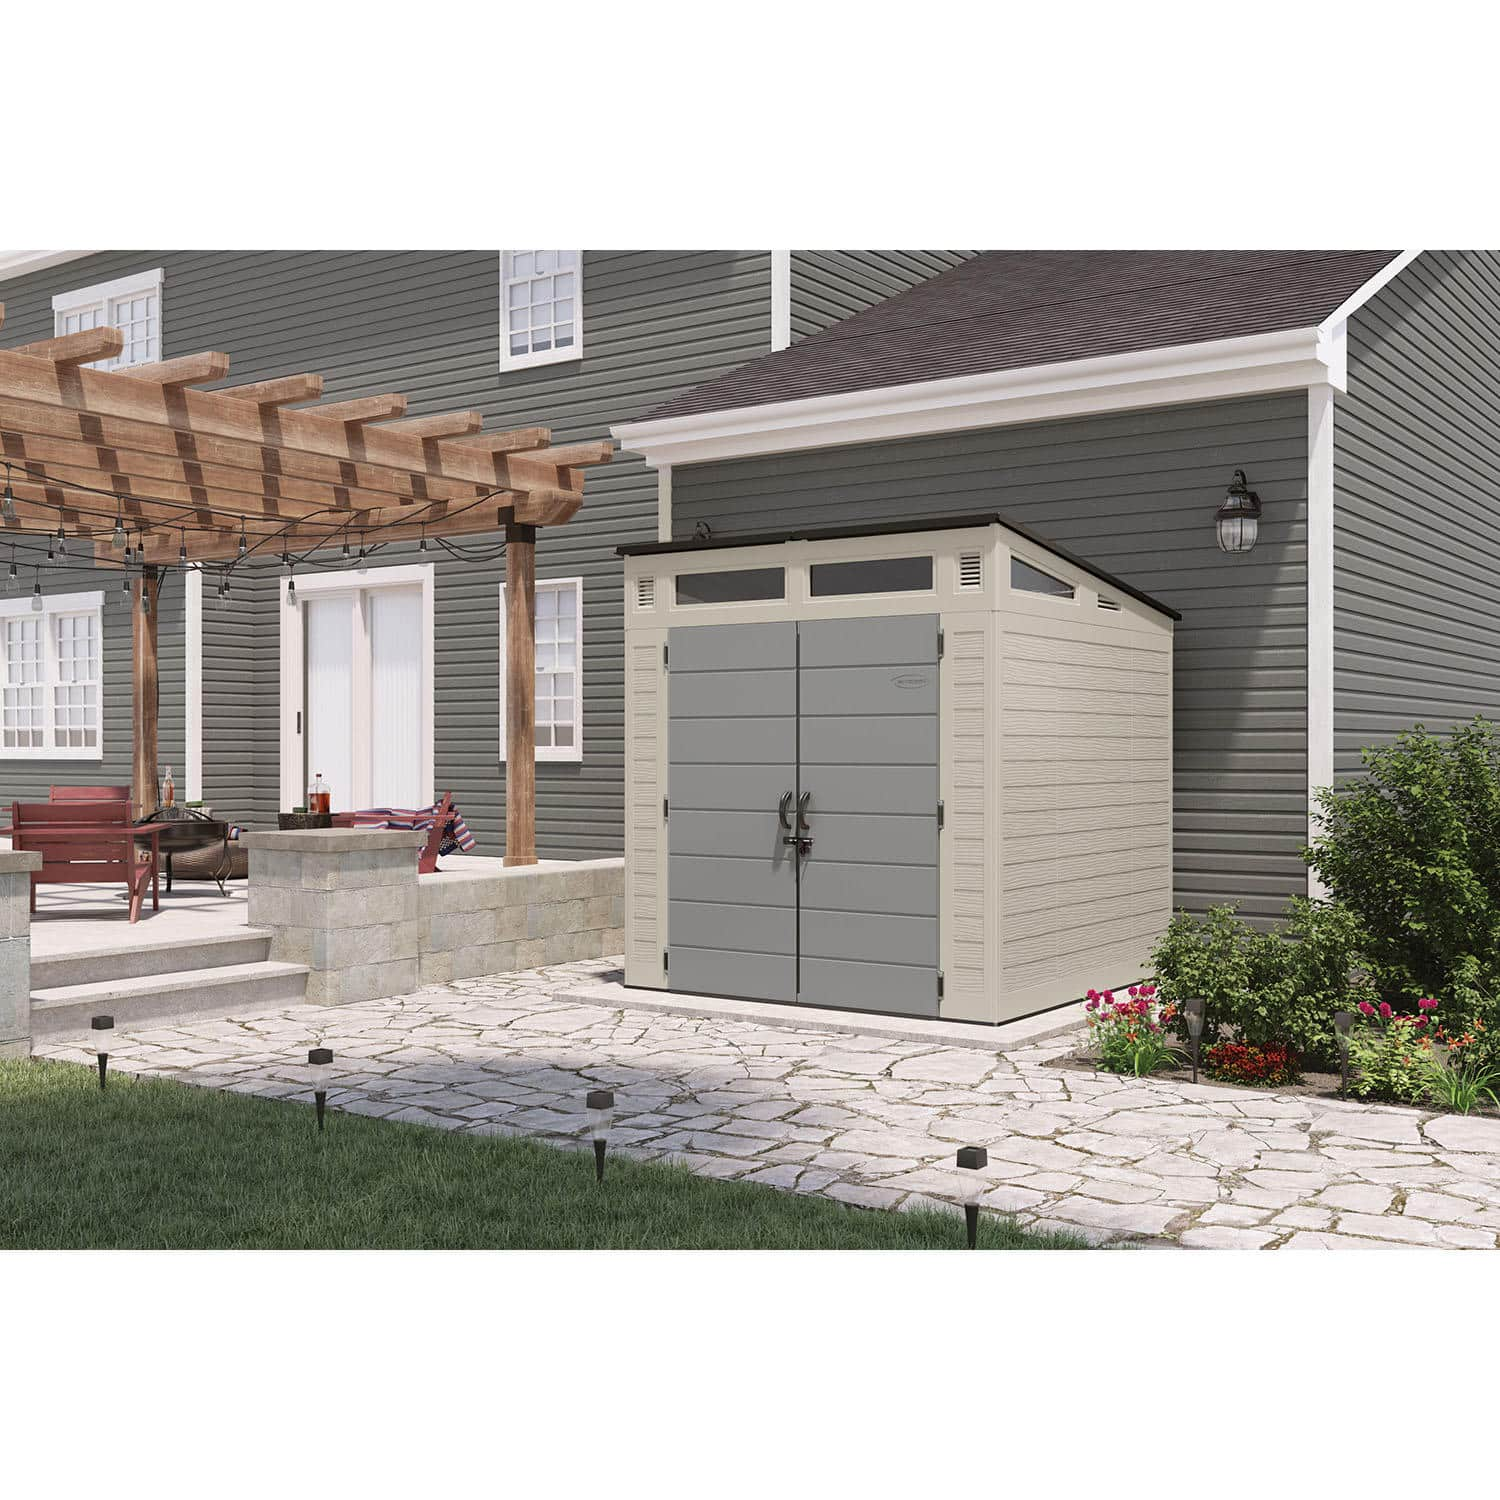 Suncast 7x7 Modernist Resin Storage Shed - $749 Shipped from Sam's Club